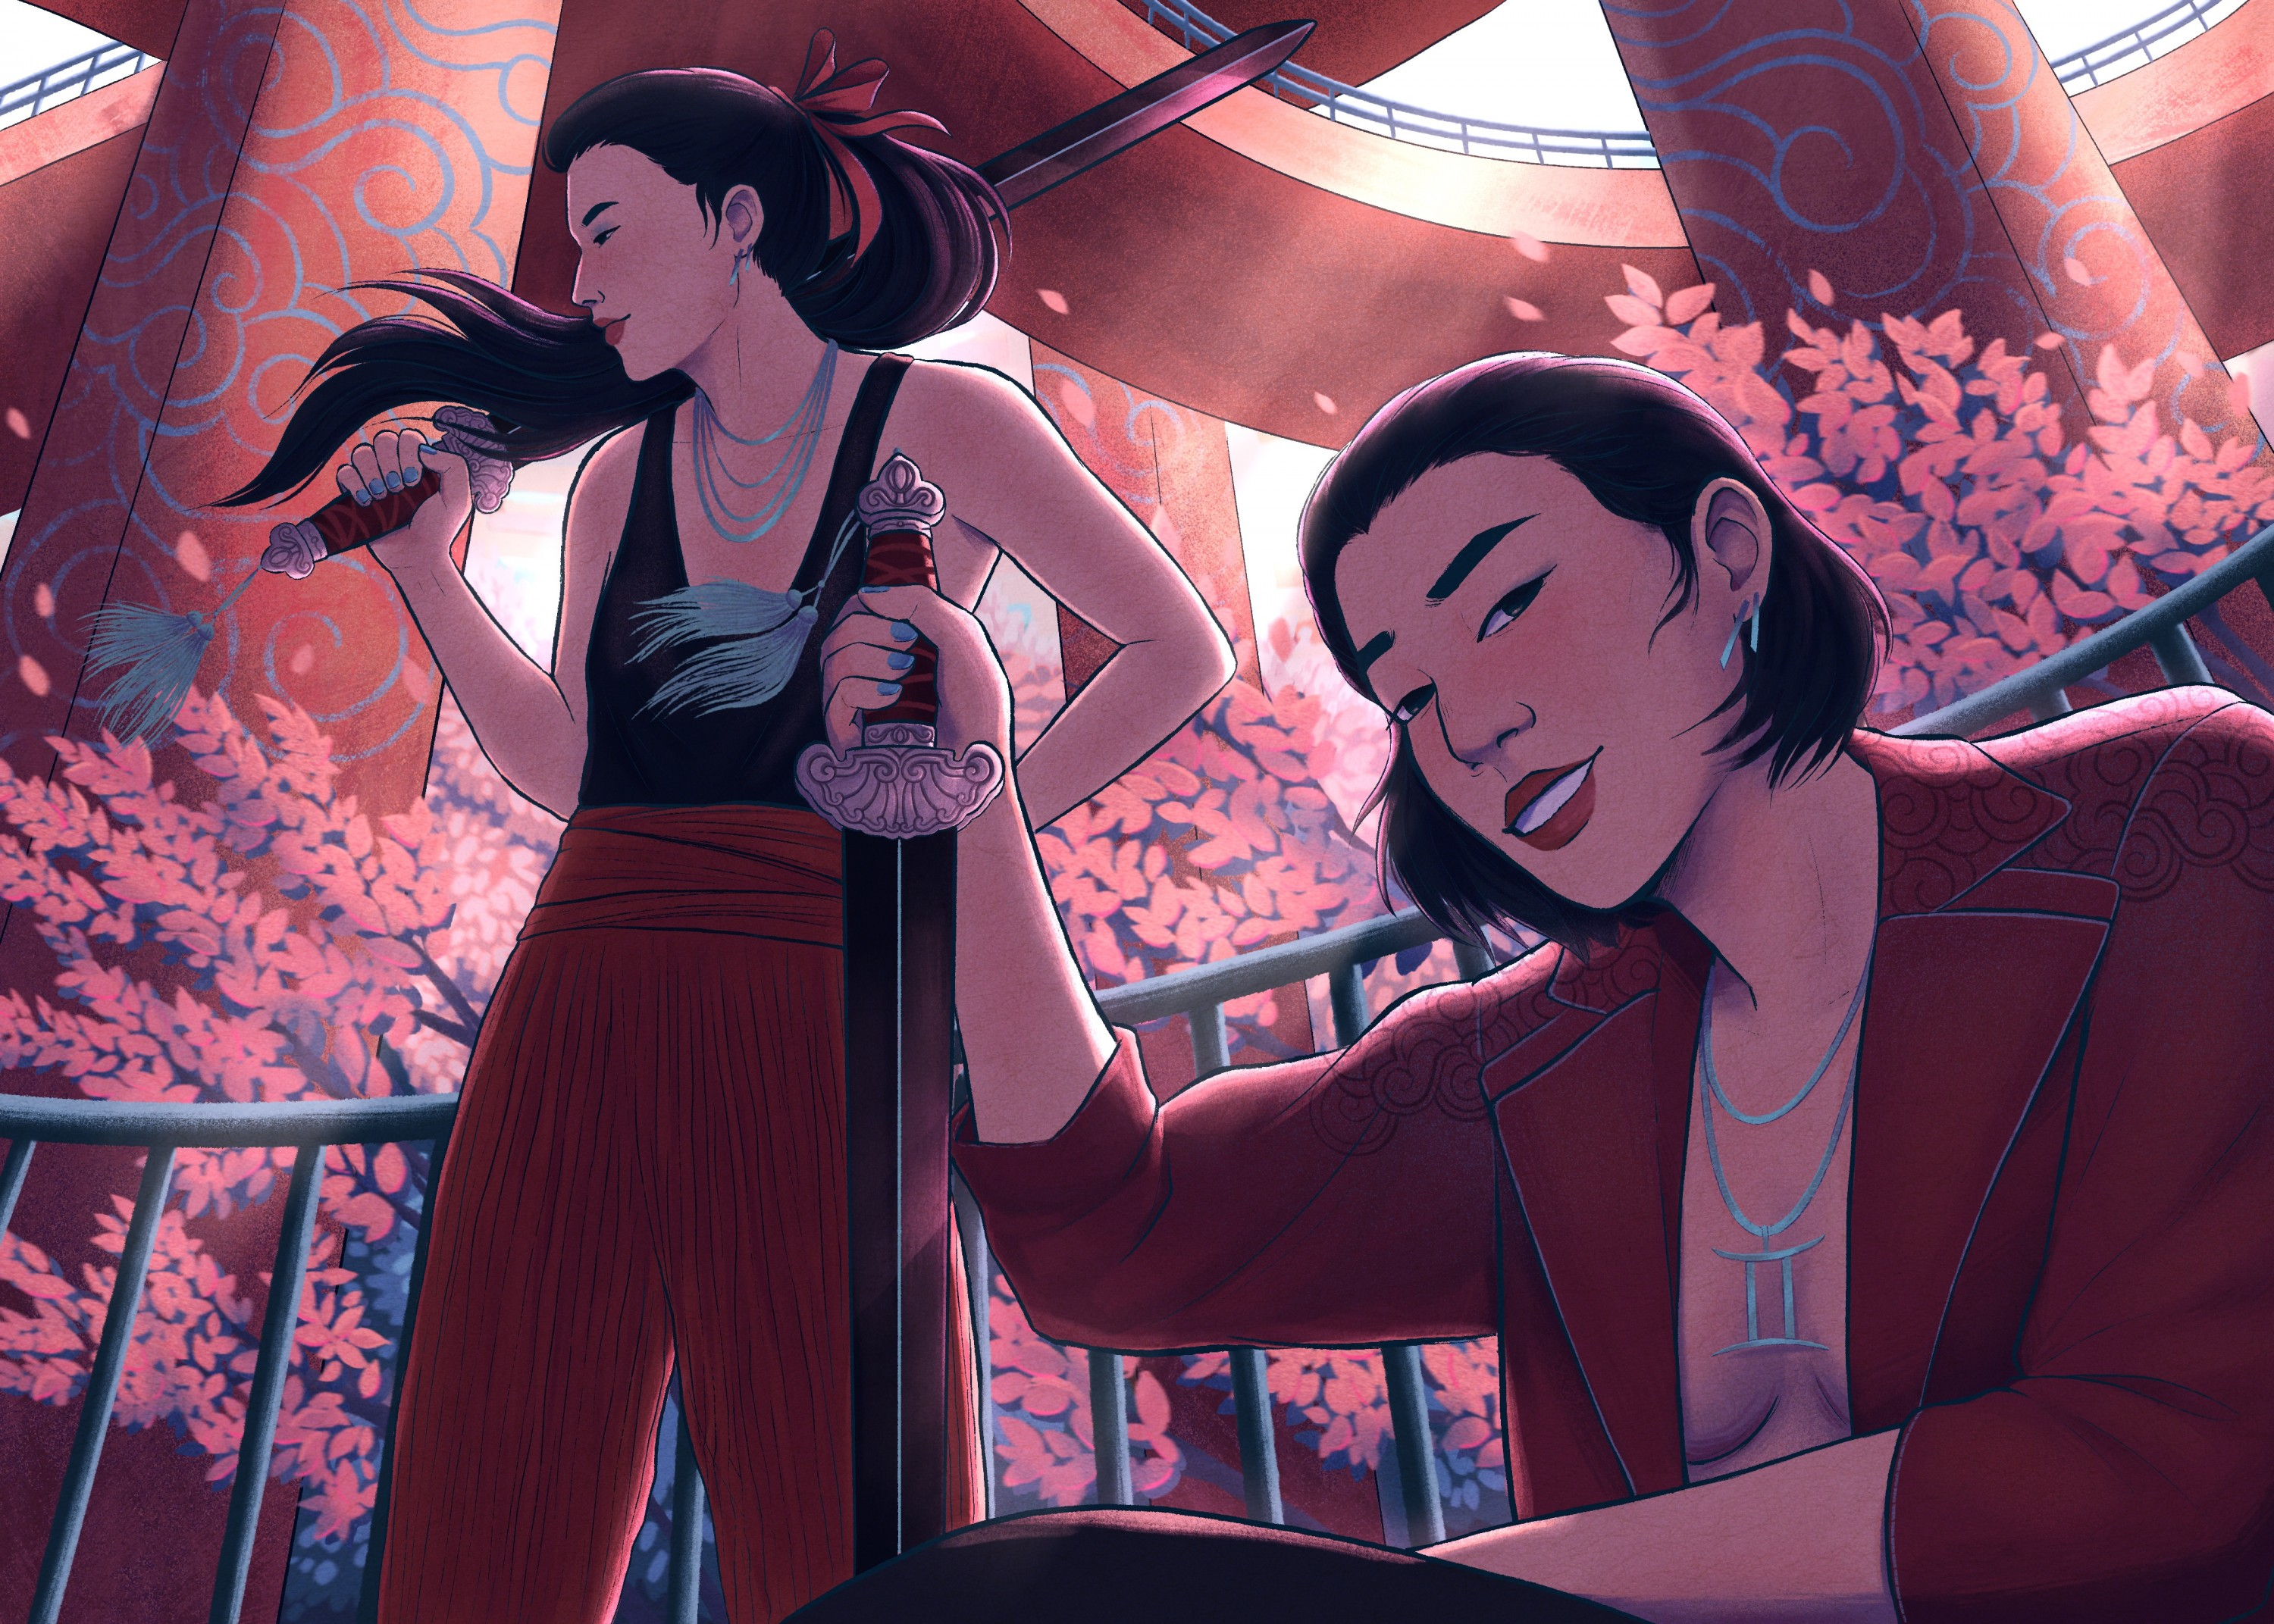 A digital art piece that features a pair of twins, both young women with pale skin, straight dark hair, and dark eyes, who are standing underneath an overlapping concrete overpass. There is a woman crouching the foreground on the bottom right who is smirk